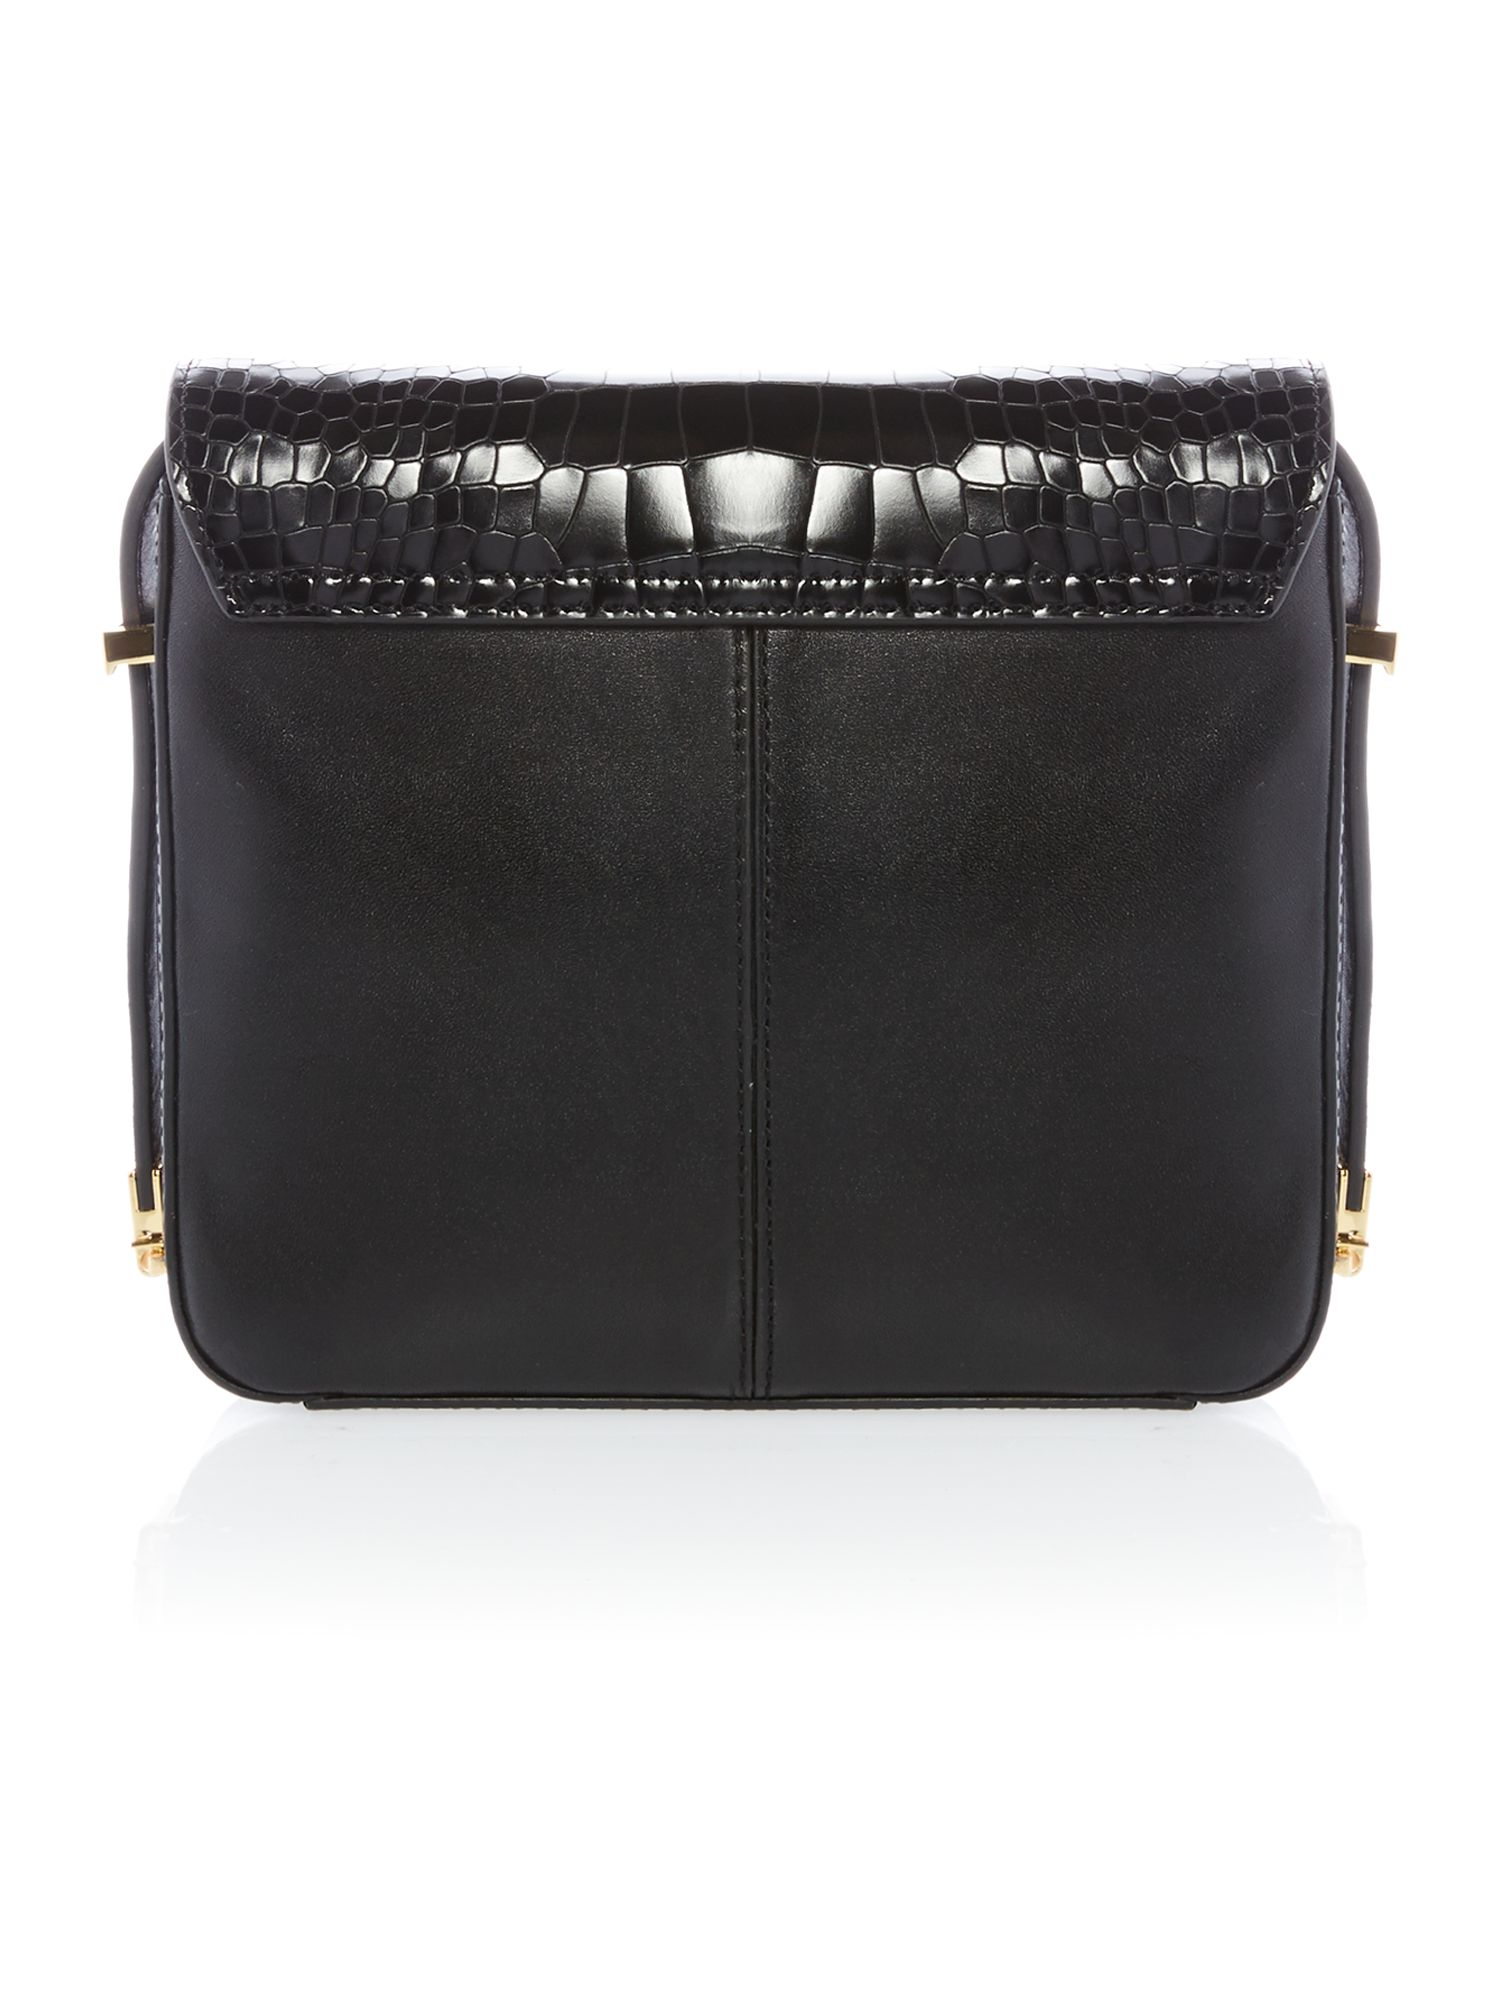 Small black croc metal t-bar cross body bag